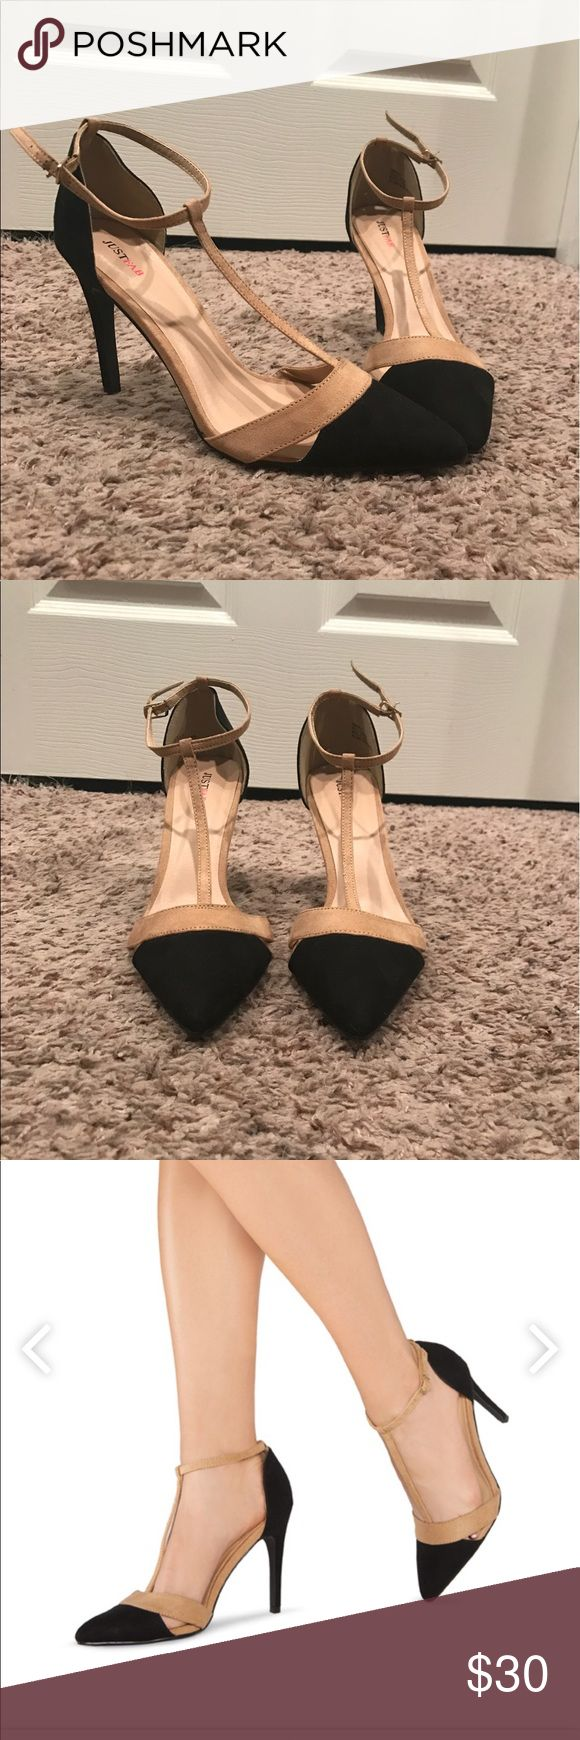 Black and nude pointy toed heels JustFab - brand new- never worn. Size 8.5 JustFab Shoes Heels